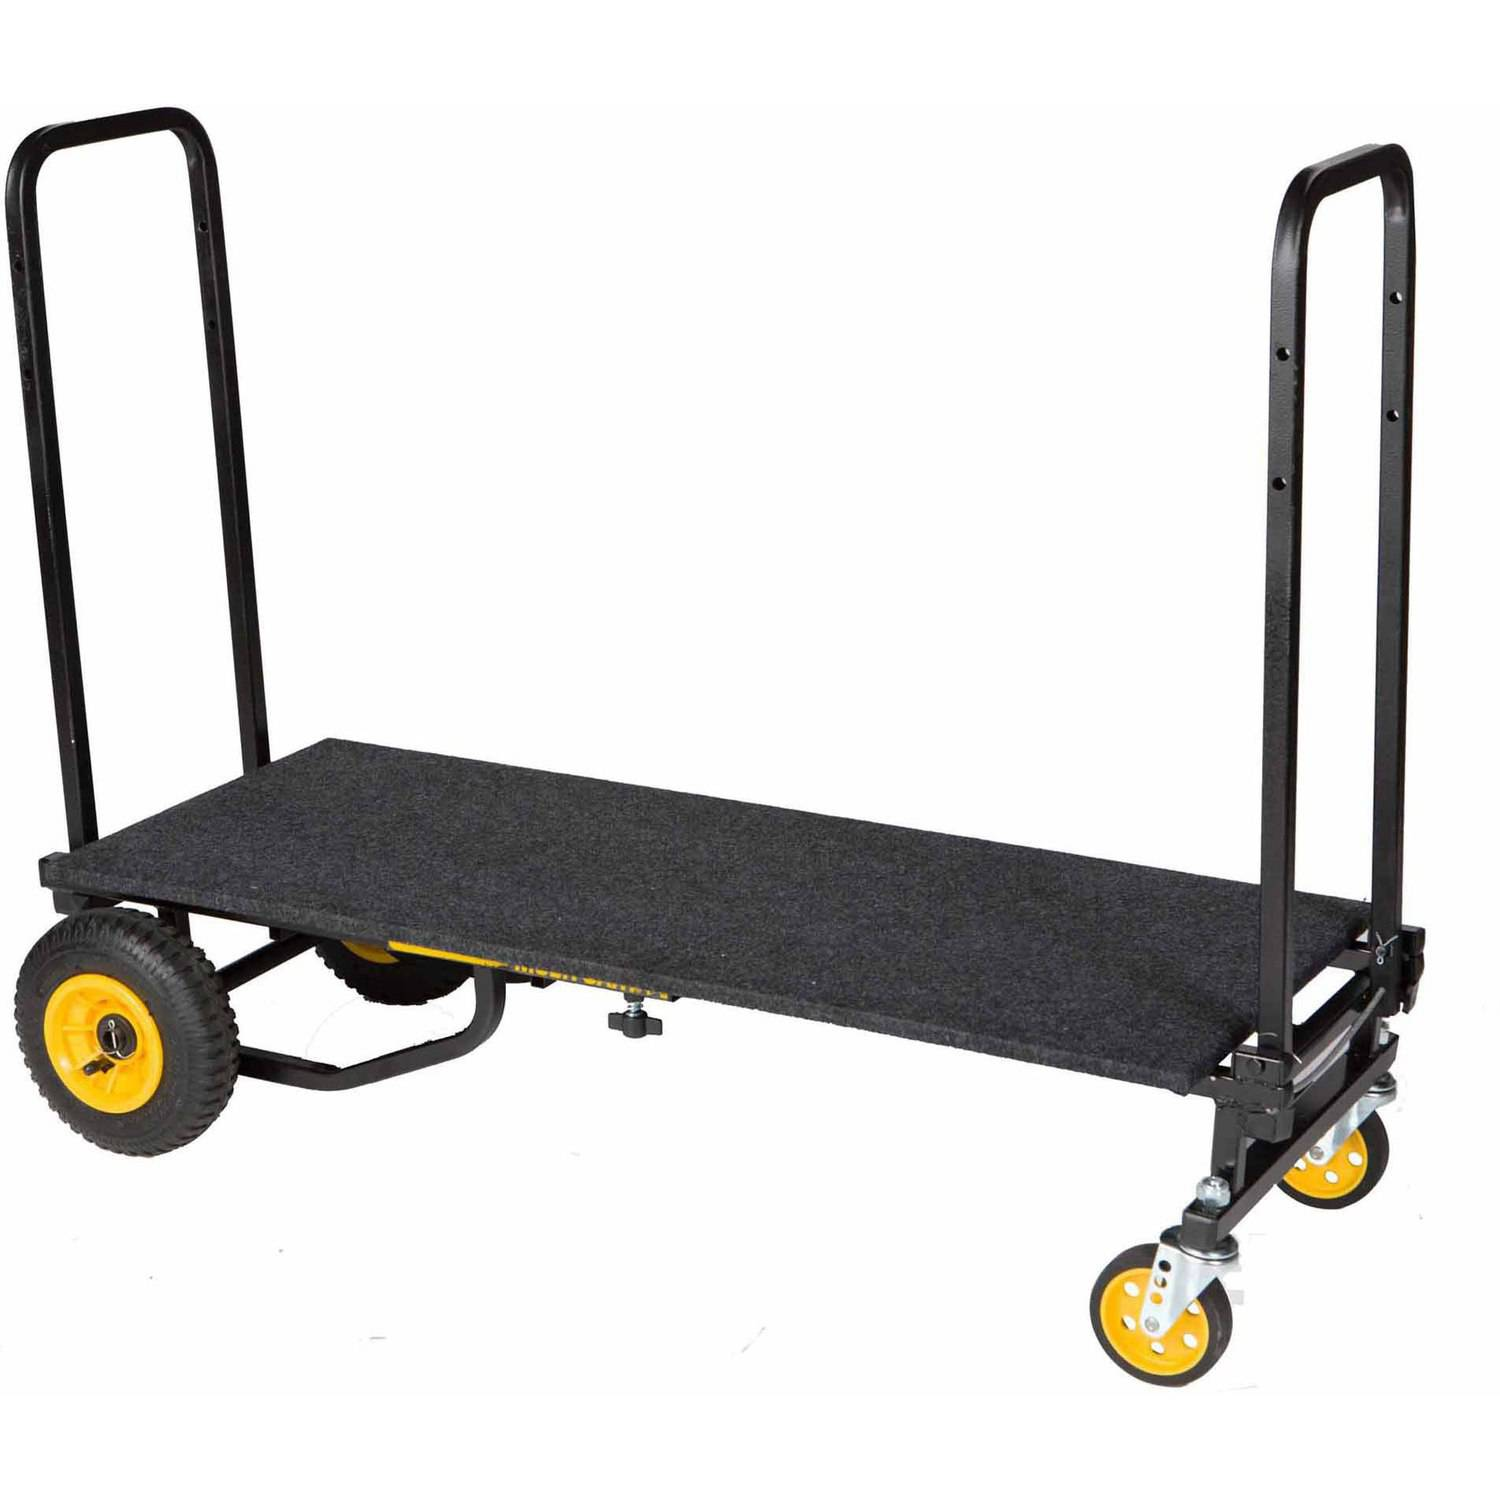 Rock N Roller RSD6 Solid Deck for R6RT Multi Equipment Cart